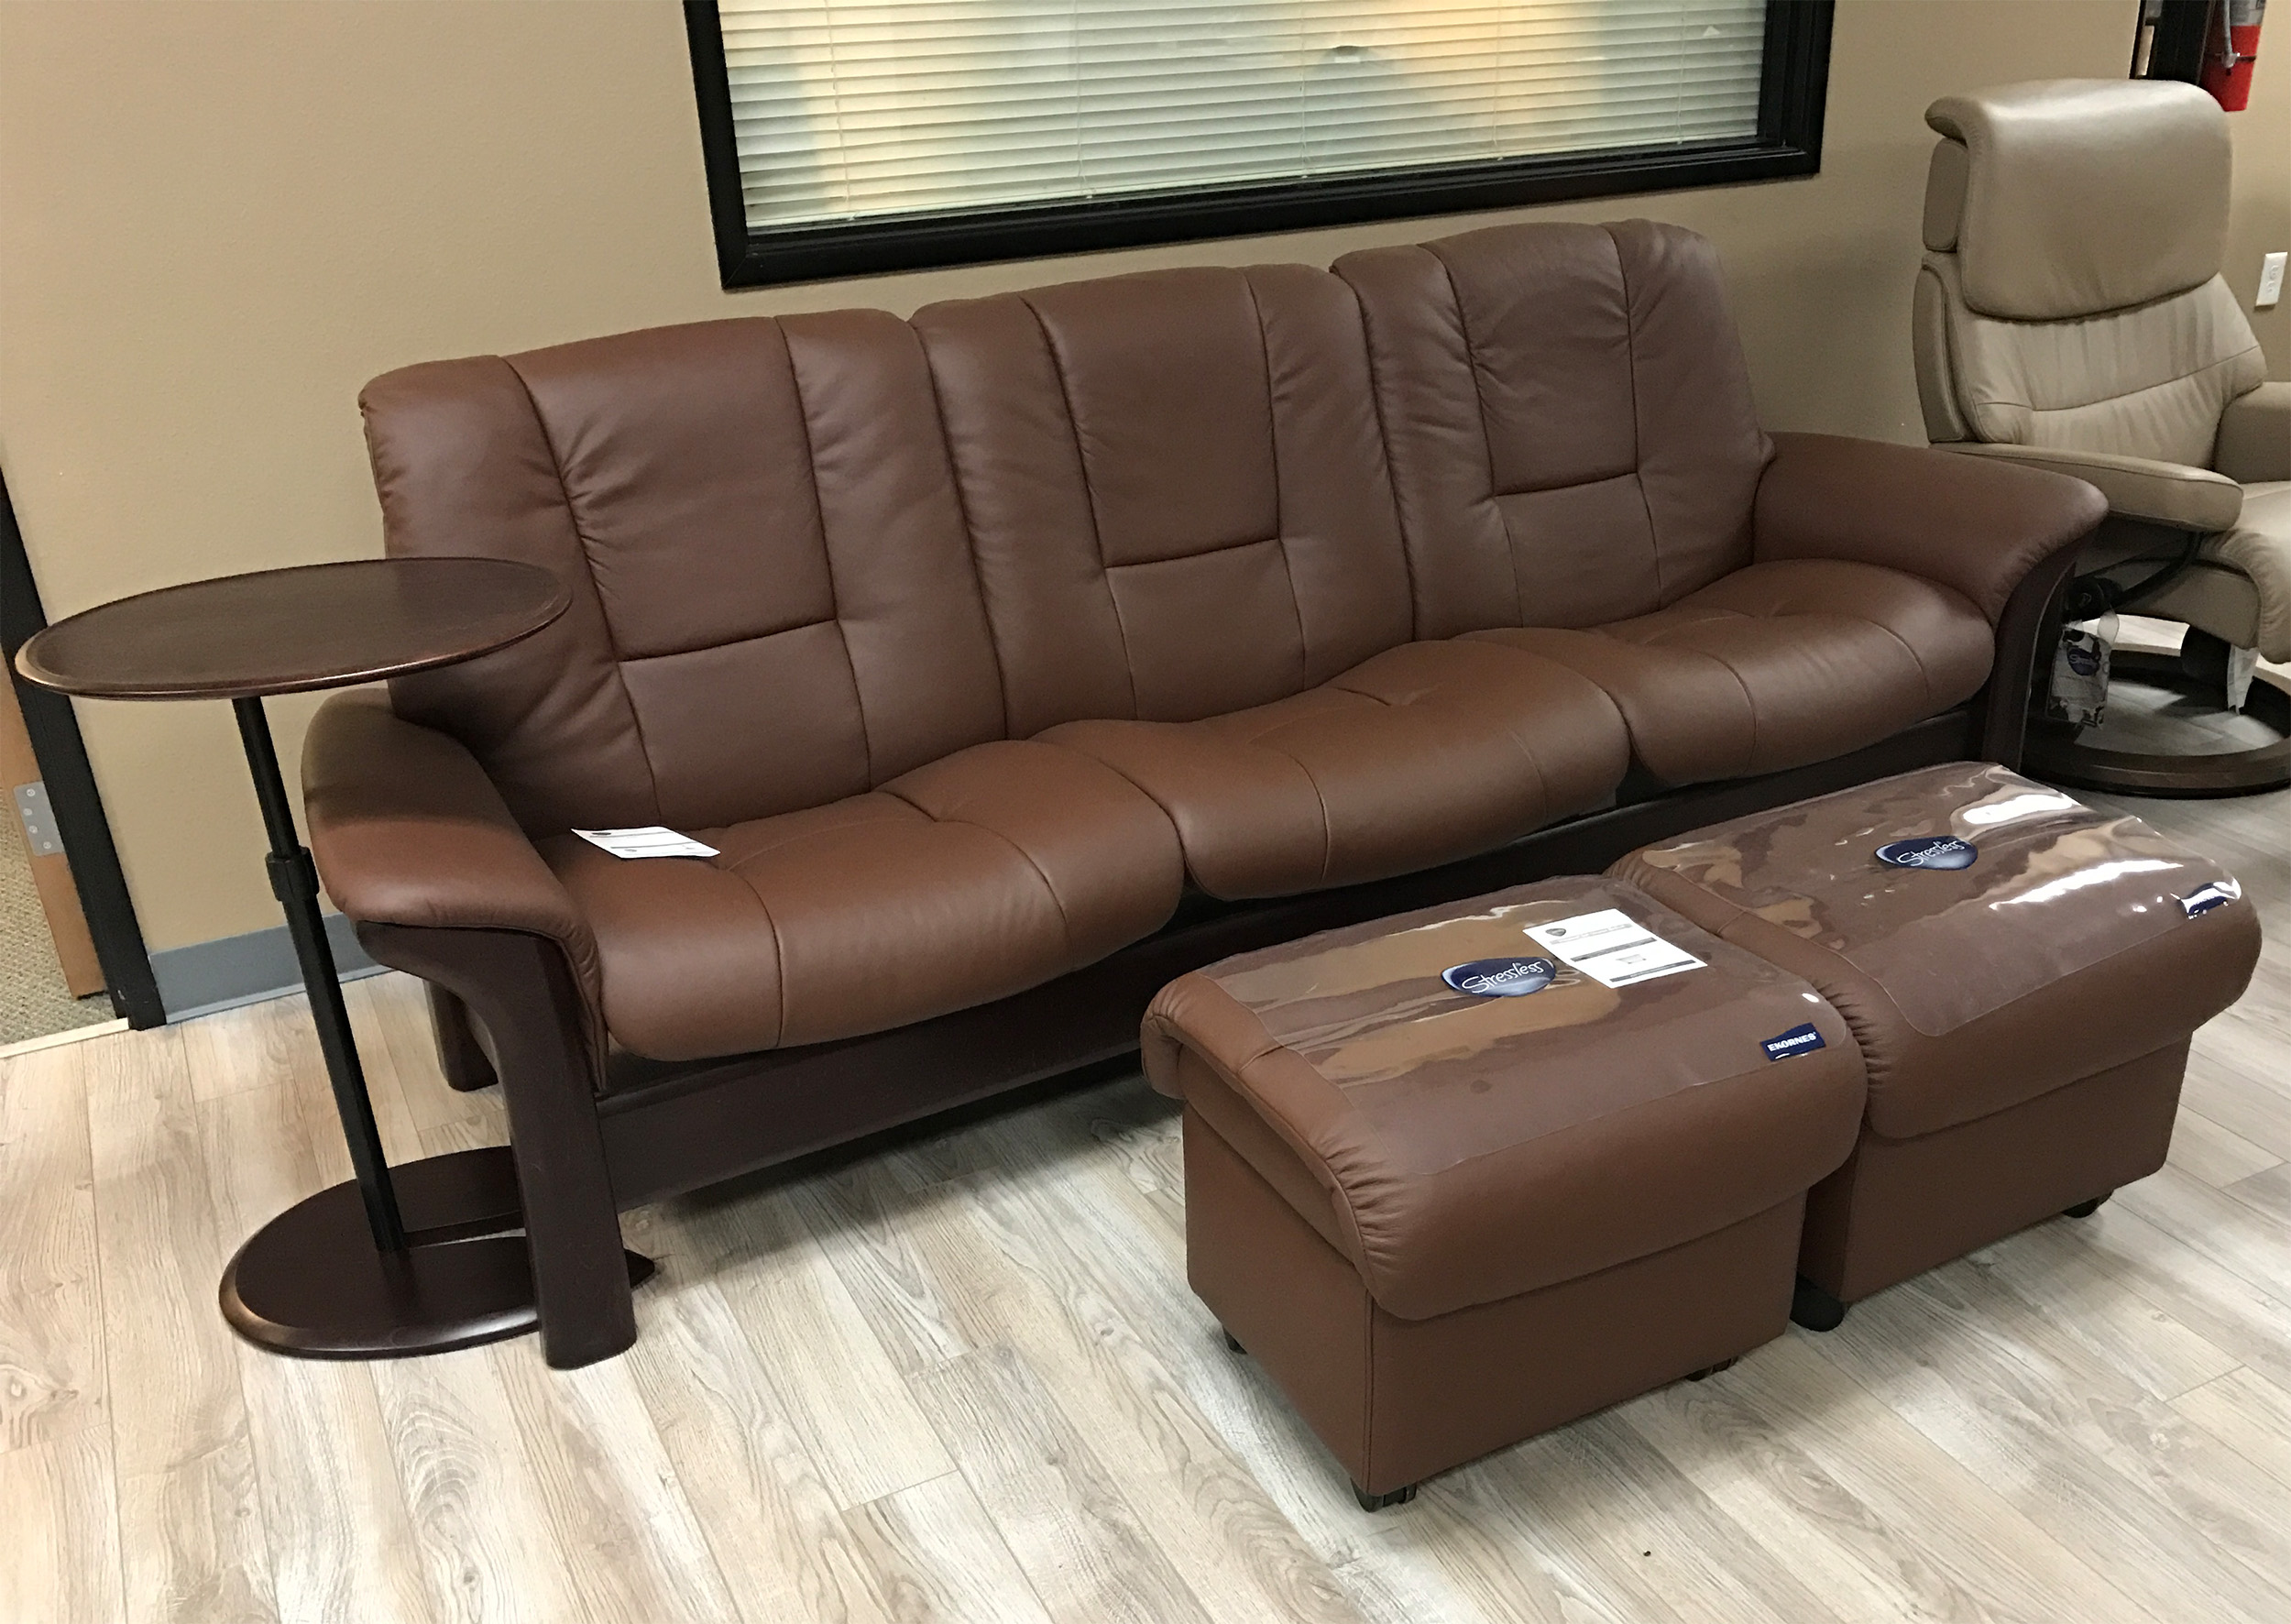 multiple walmart ip and plush vinyl ottoman recliner com set swivel mainstays colors pillowed leather with chair daae